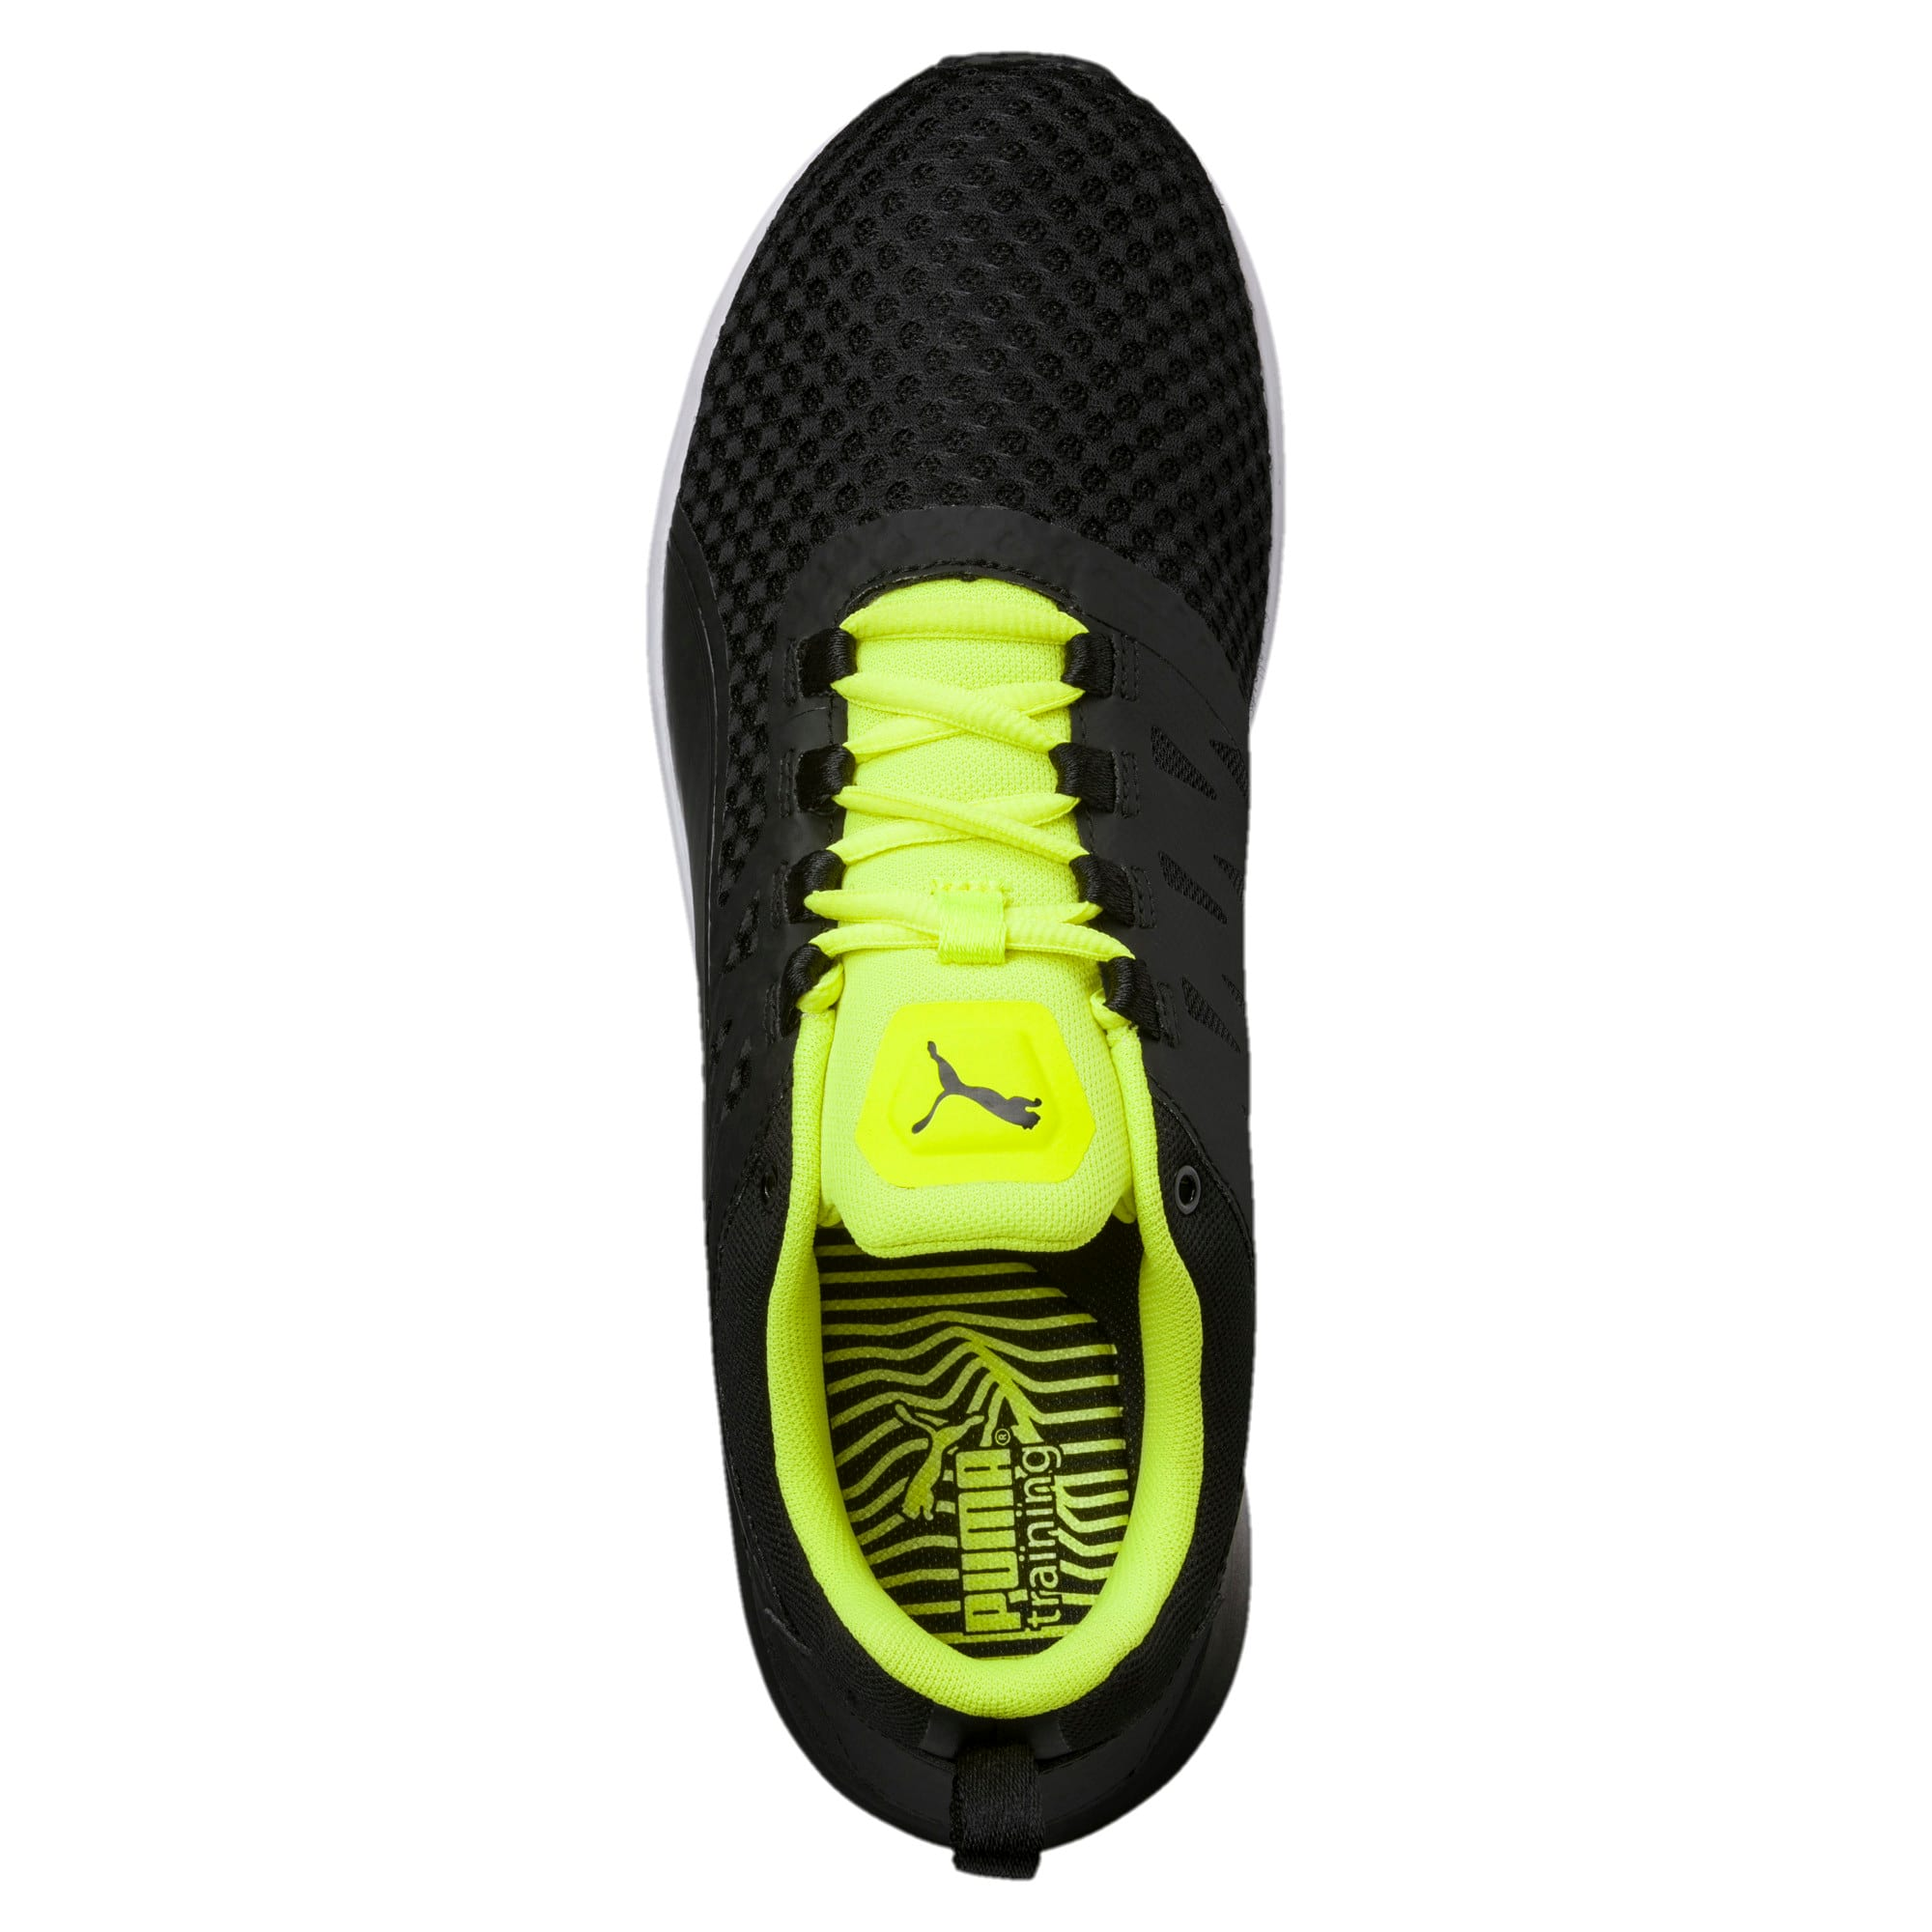 Thumbnail 5 of Pulse XT v2 Mesh Men's Training Shoes, Puma Black-Safety Yellow, medium-IND